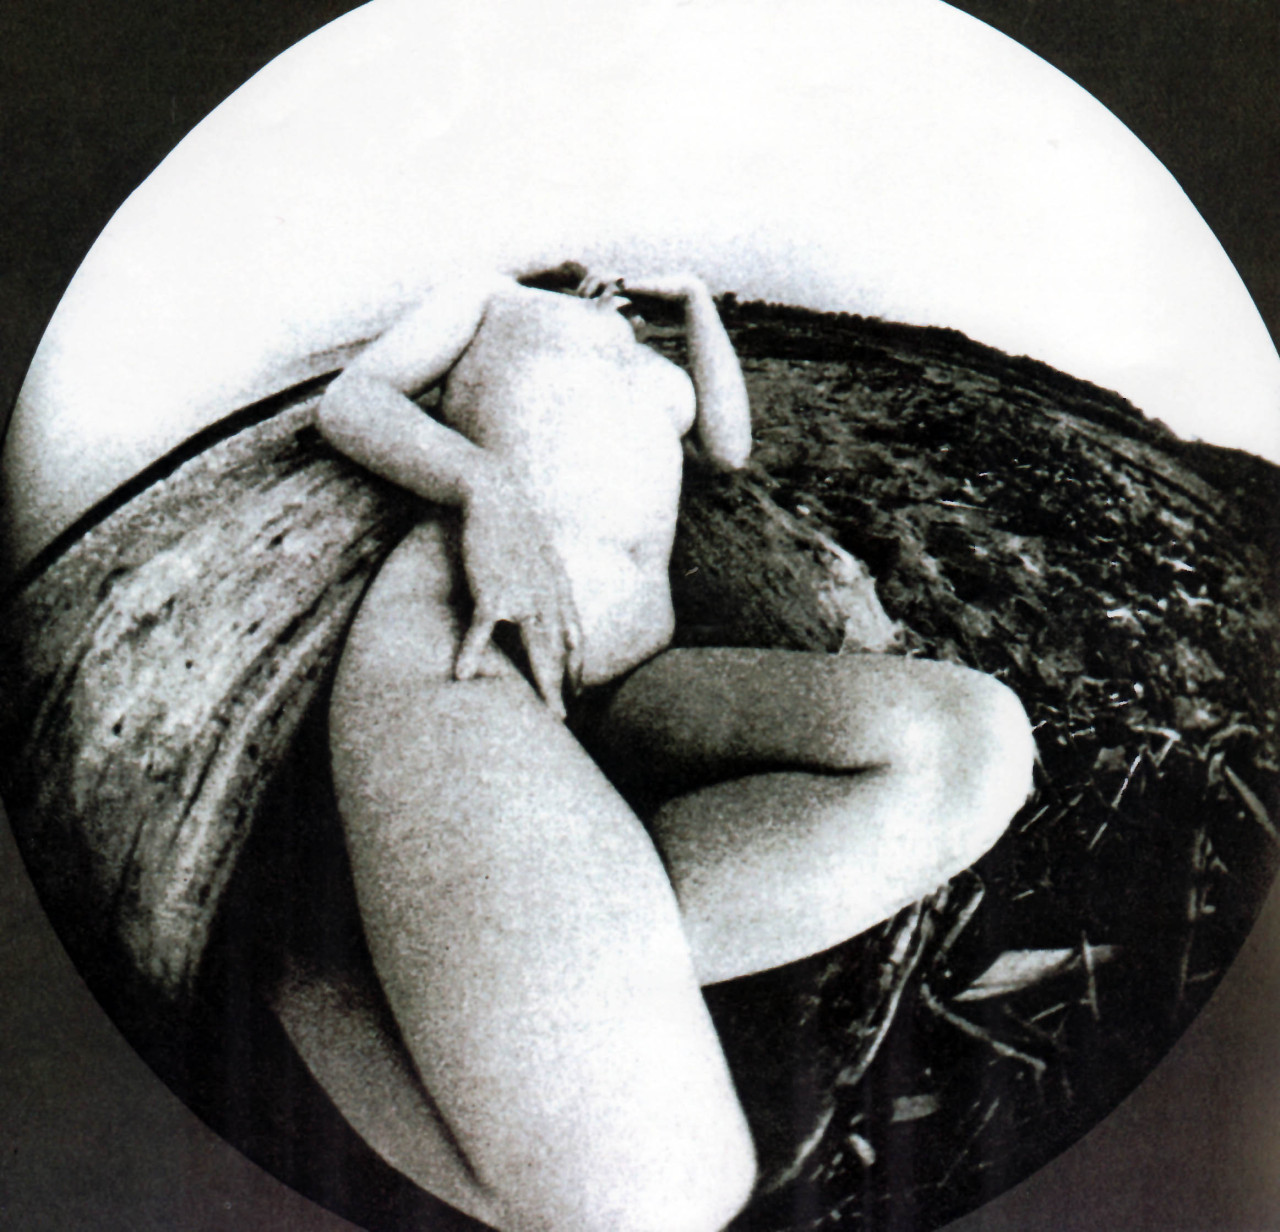 showstudio:  Image used as reference and research by Nick Knight for Pirelli